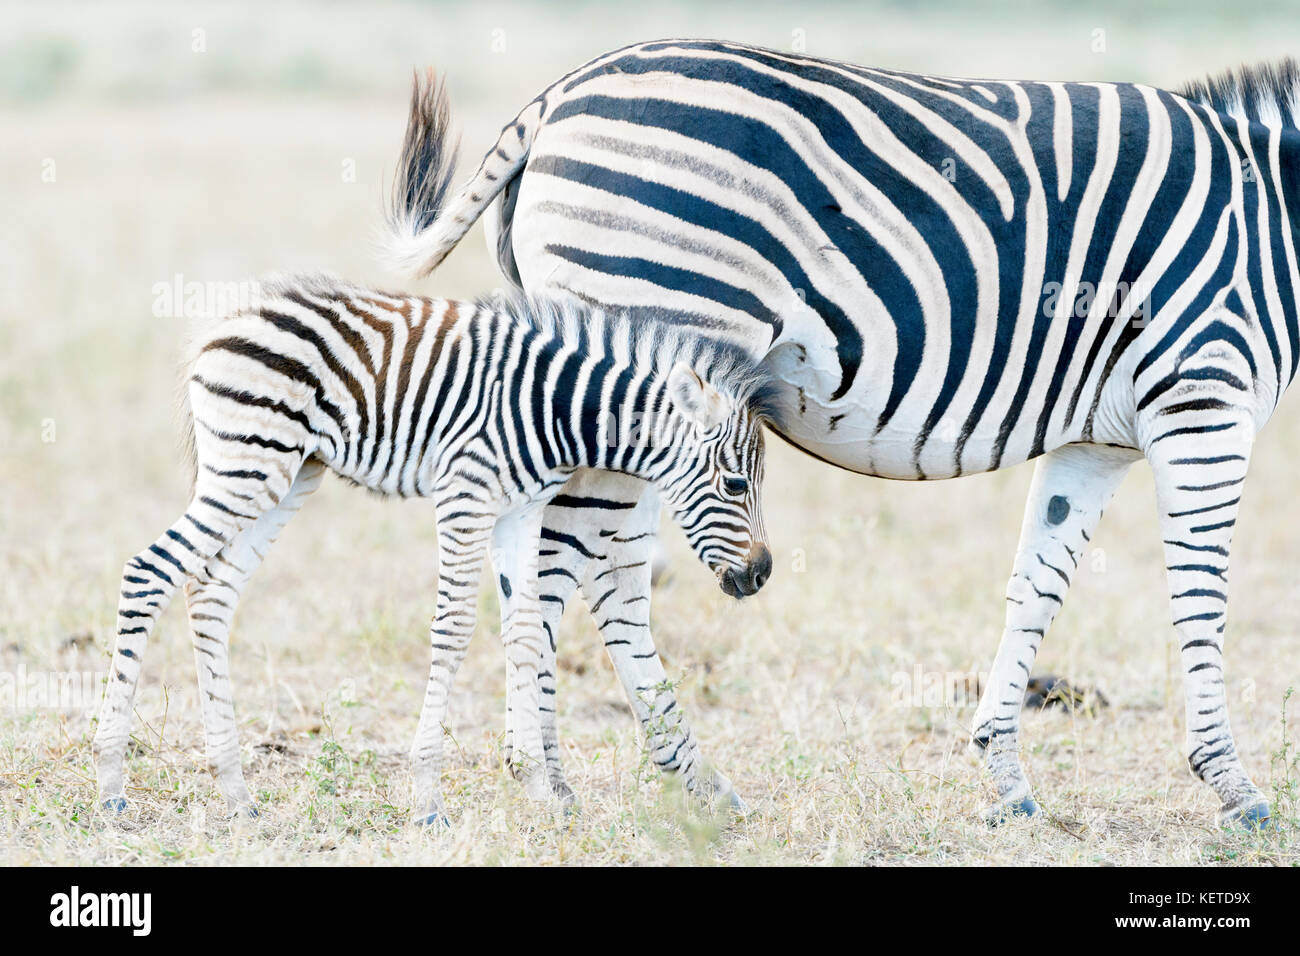 Plains zebra (Equus quagga) foal trying to drink with mother, Kruger National Park, South Africa - Stock Image